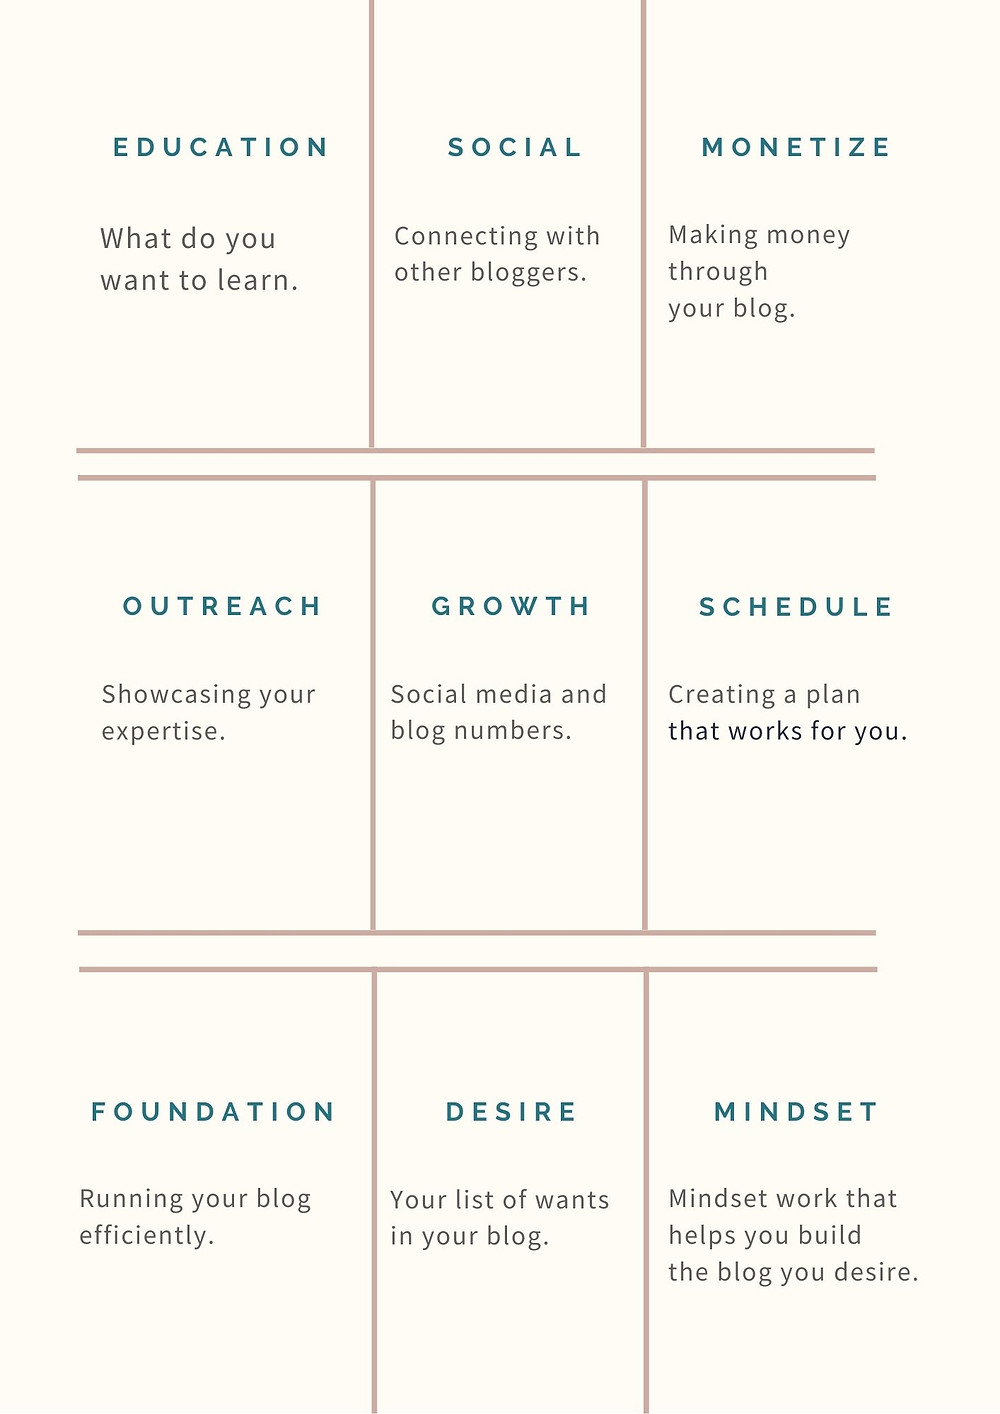 The different categories to use when creating your blogging vision.